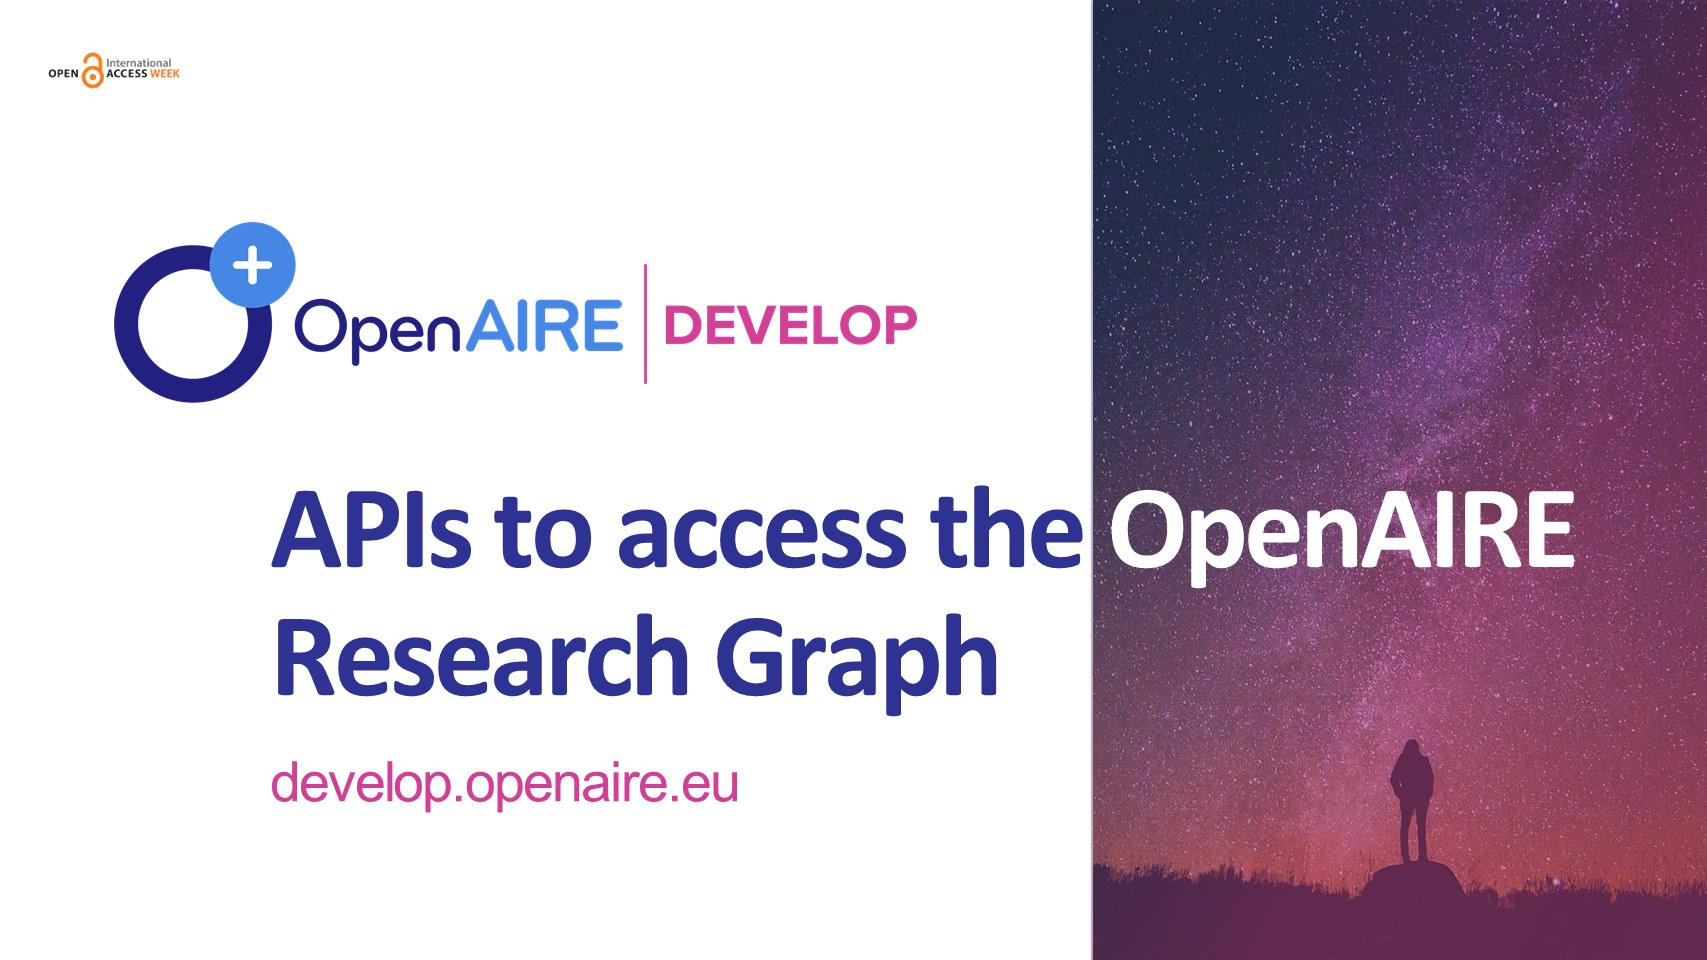 OpenAIRE DEVELOP Service: APIs to access the OpenAIRE Research Graph #OAWeek